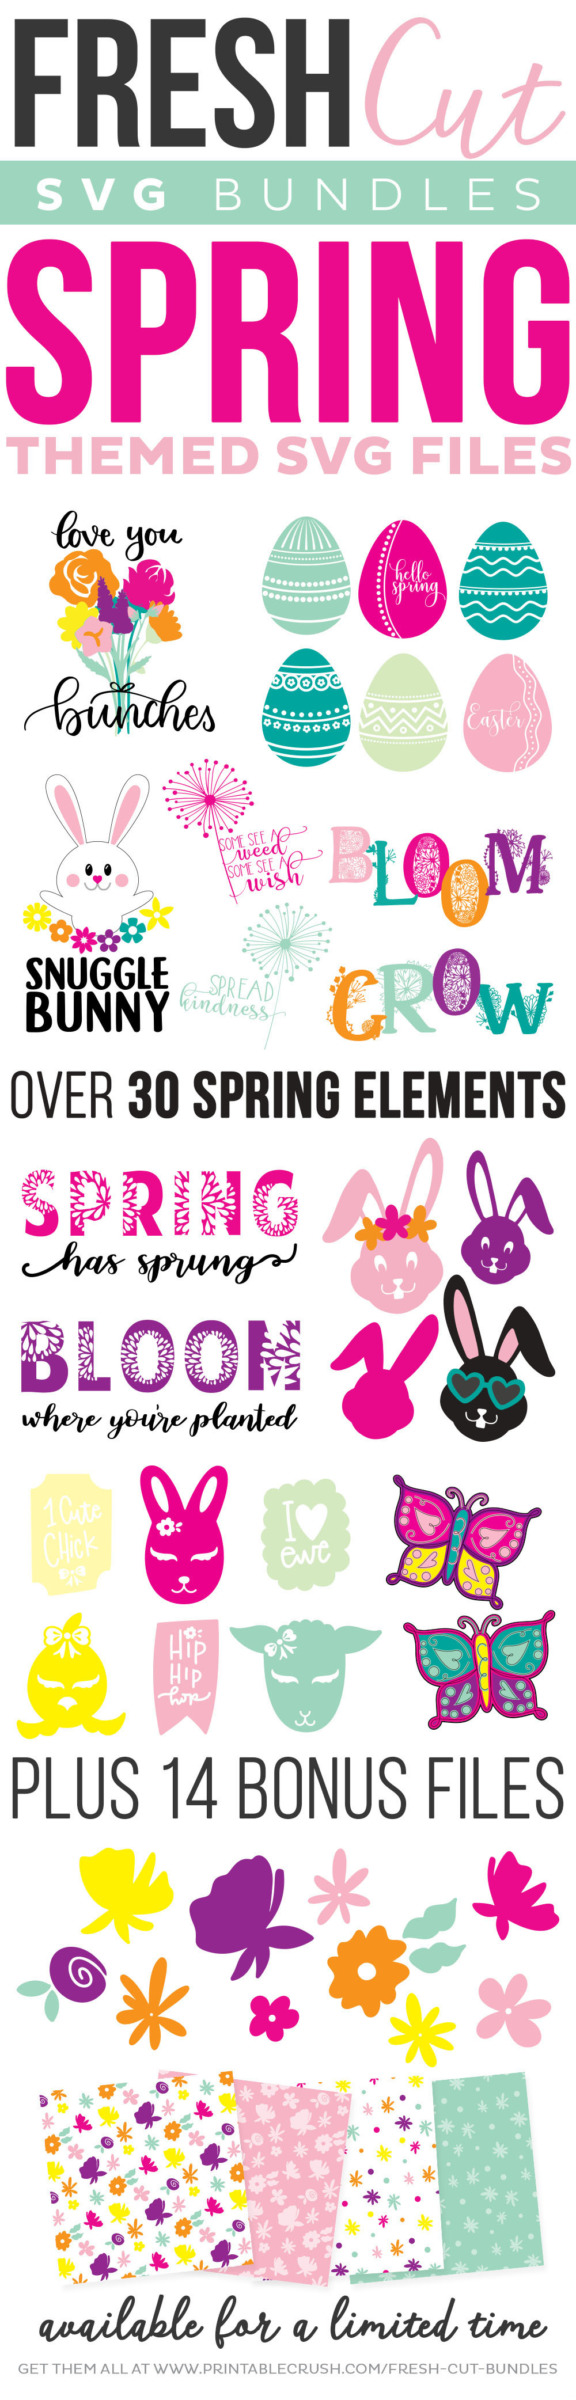 collage of all cut files and bonuses included in the spring fresh cut svg bundle